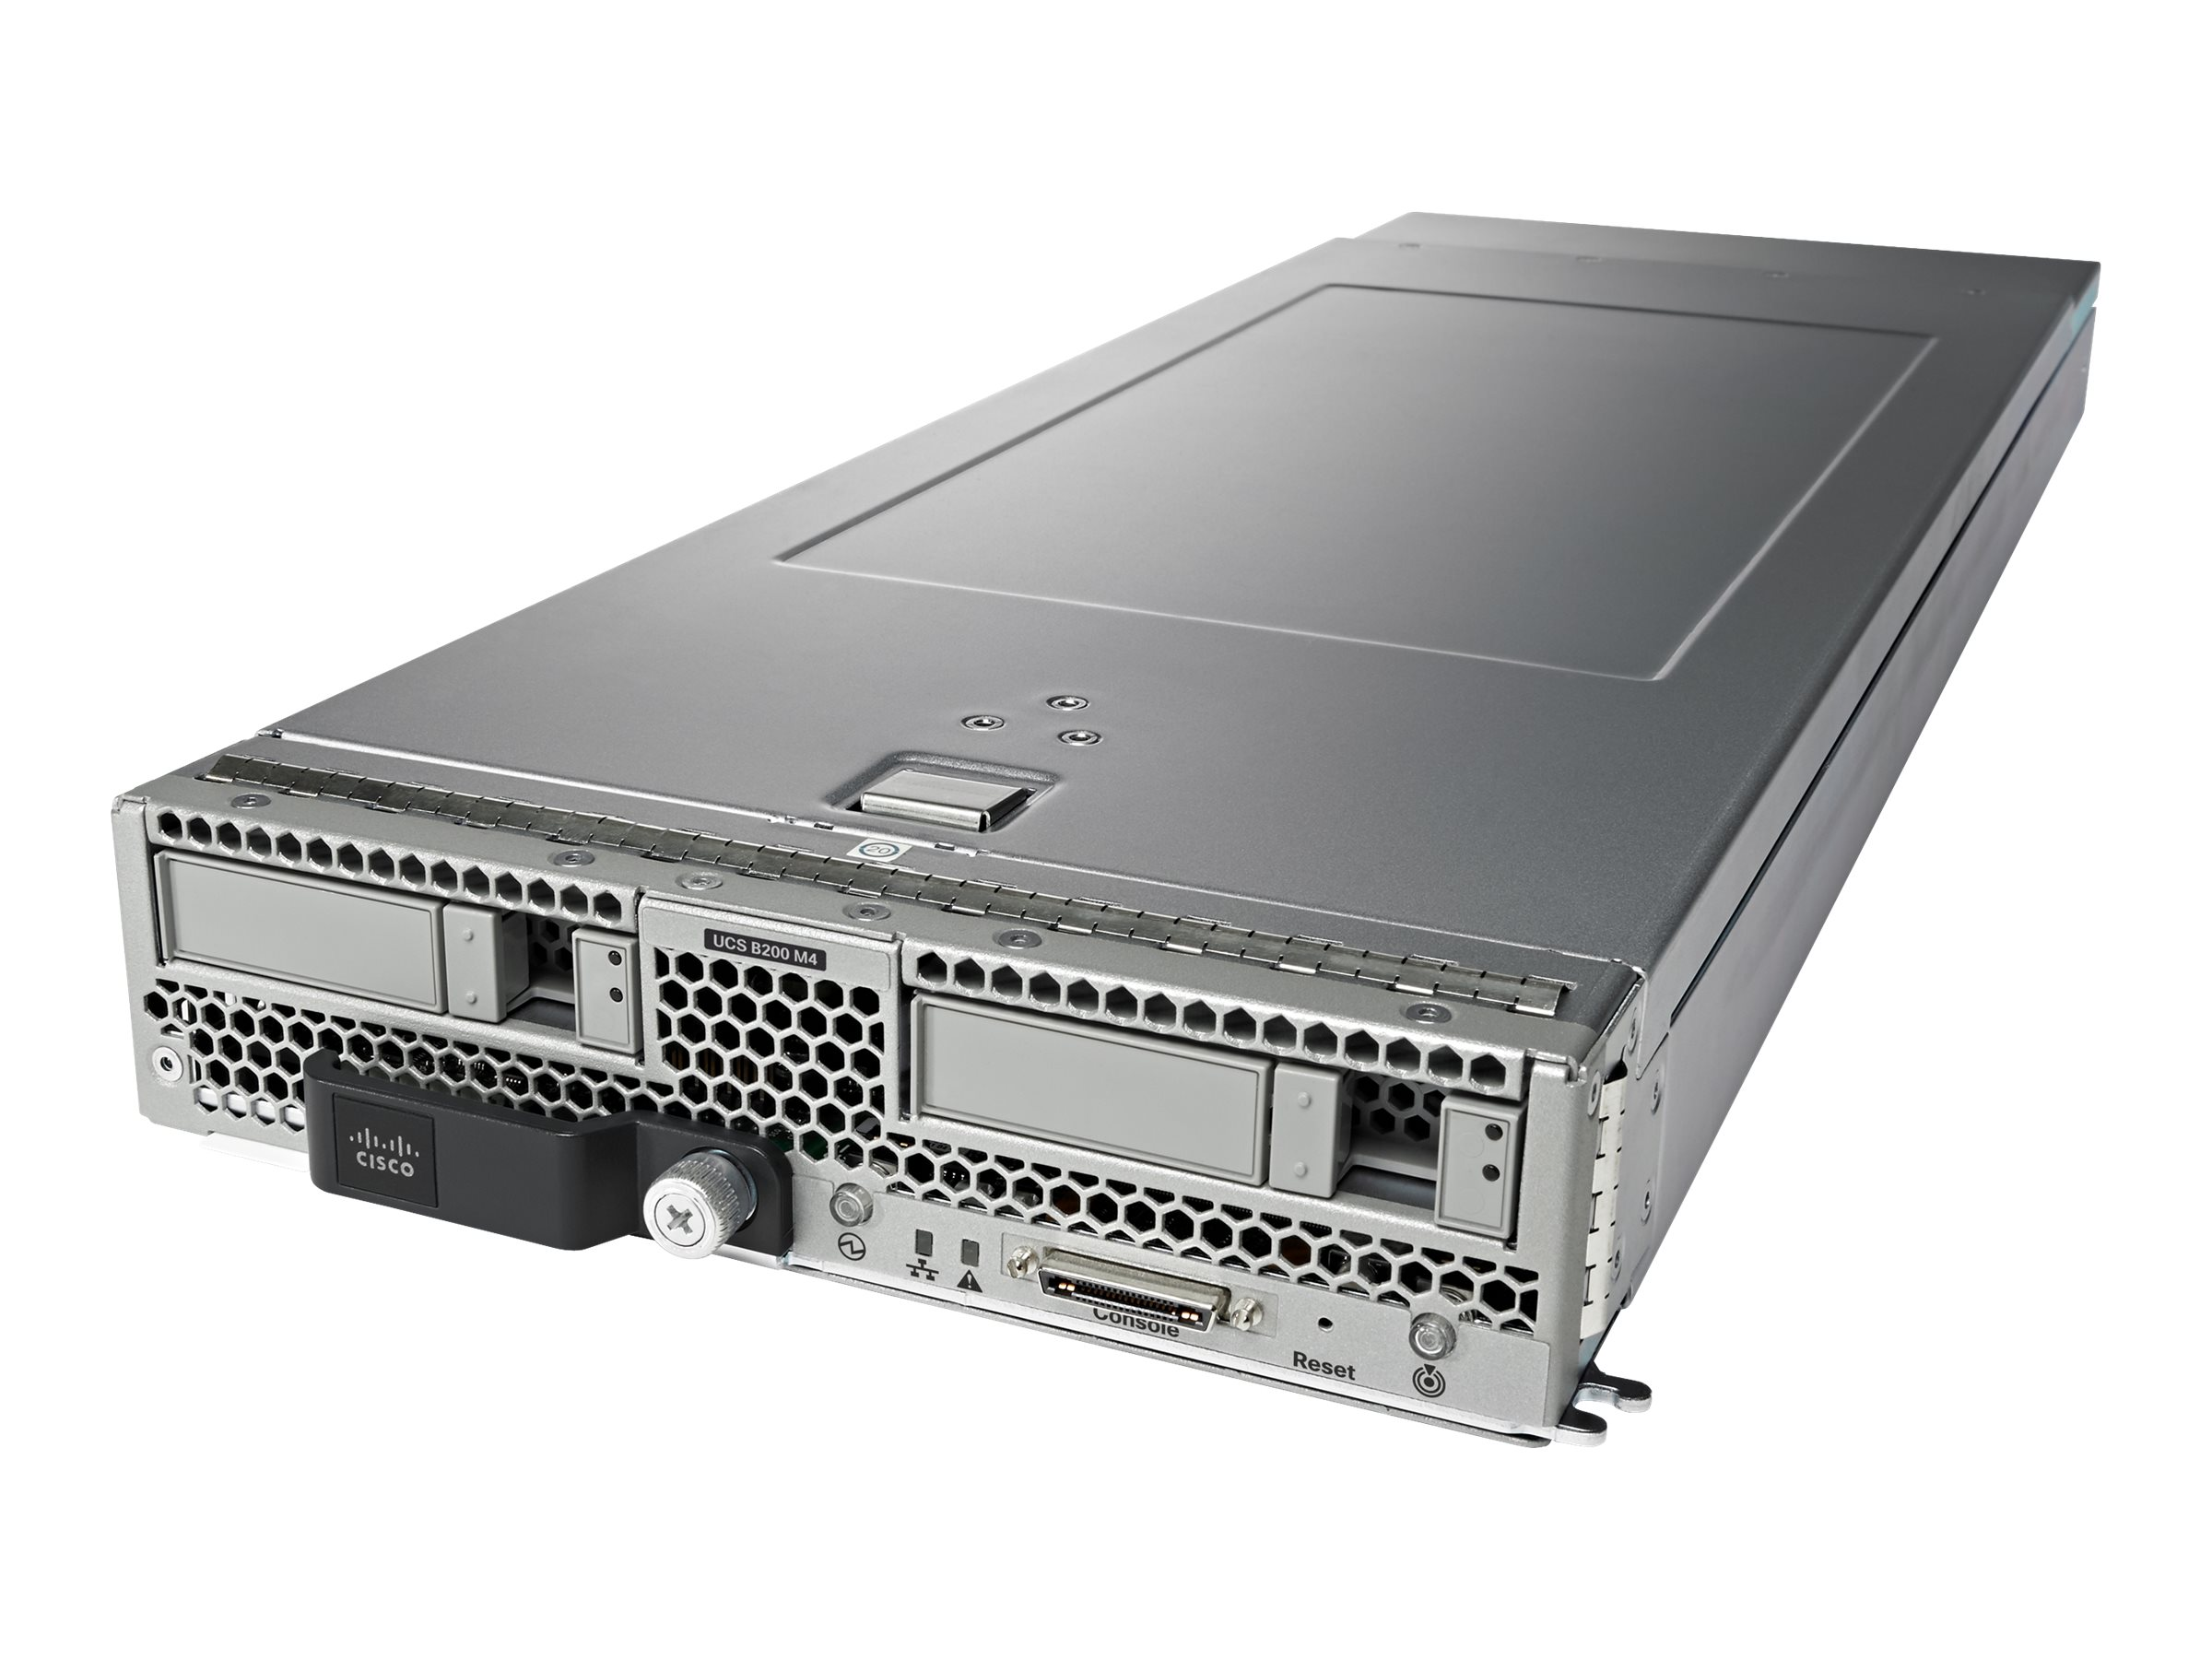 Cisco UCS-SP-B200M4-B-A1 Image 1